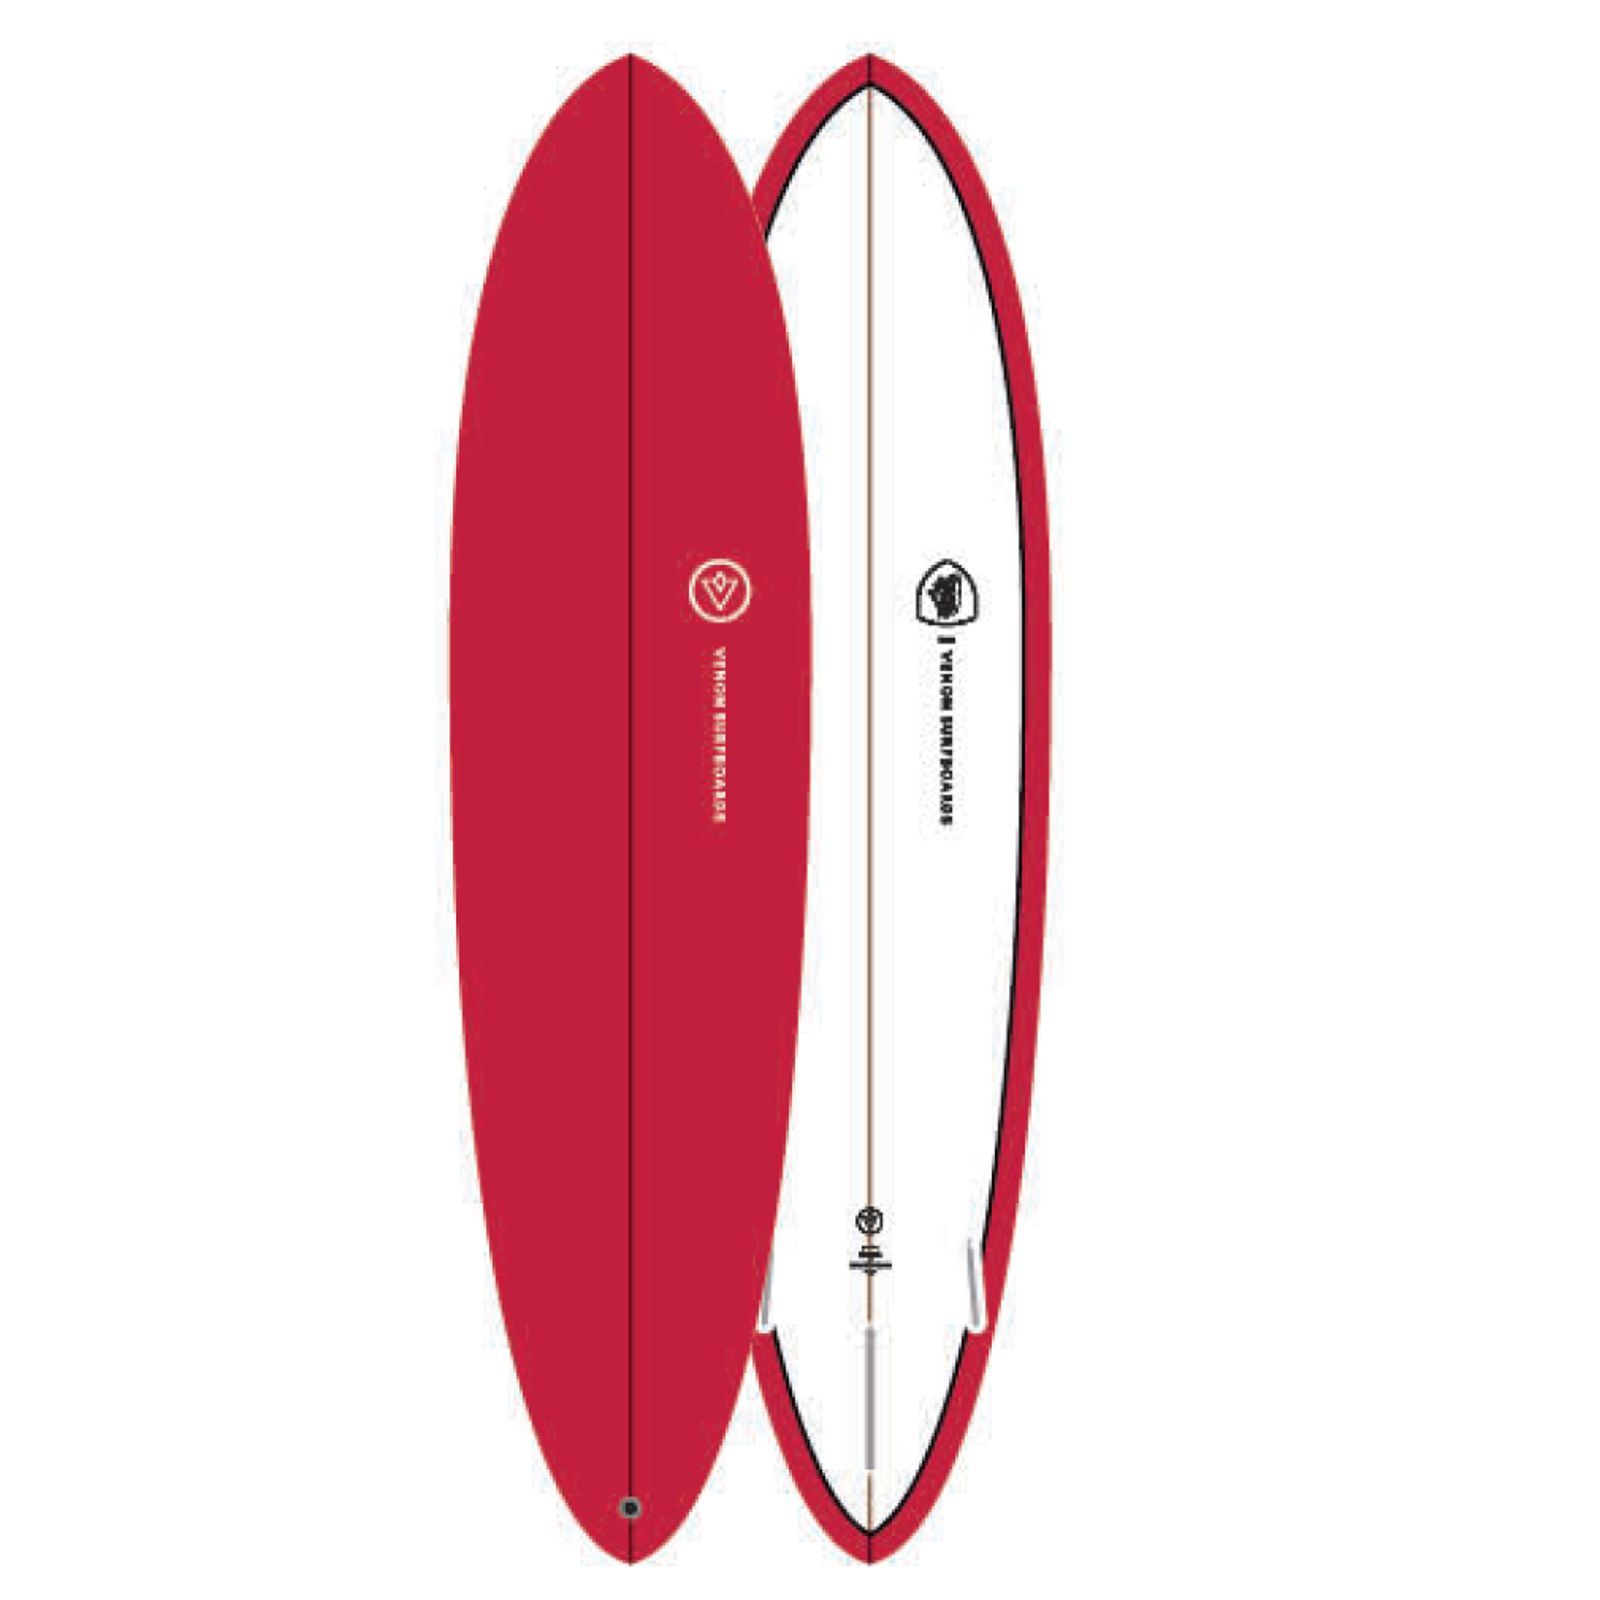 Surfboard VENON Egg 7.2 Pinline Red